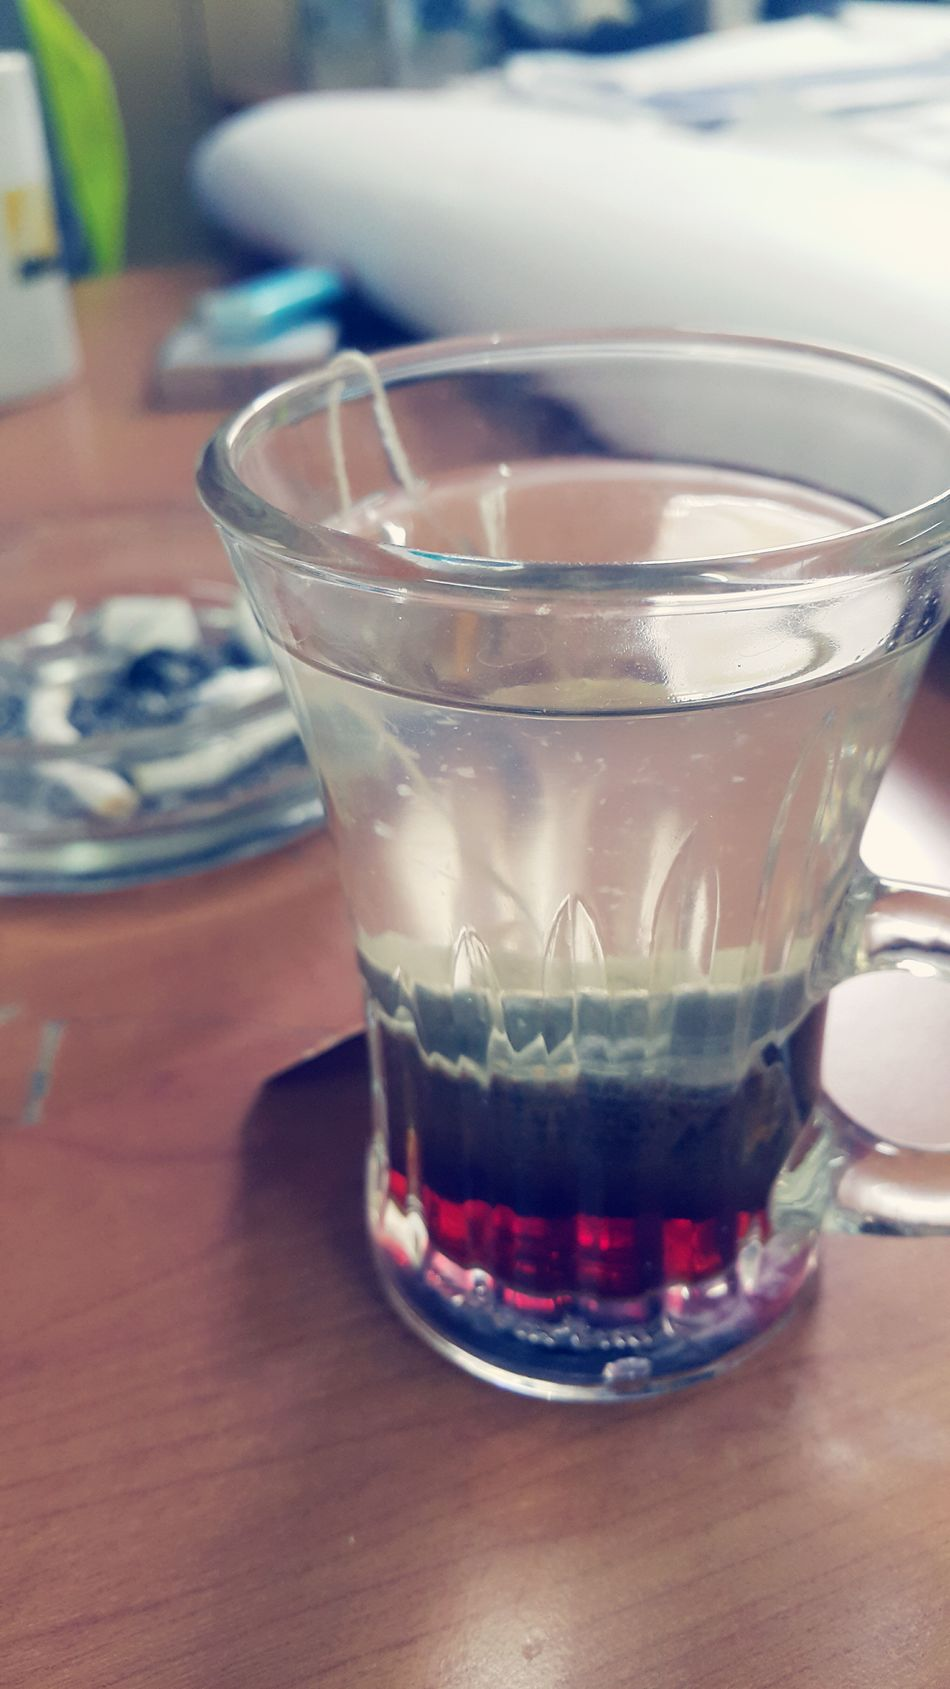 Food And Drink Table Refreshment Still Life Non-alcoholic Beverage Evening No Matter How Bad Life Gets .... Still Smile Im Still Searching For You Youre Always On My Mind Loner Life Mazhlichi Relaxing Officetime Green Hibiscus Tea